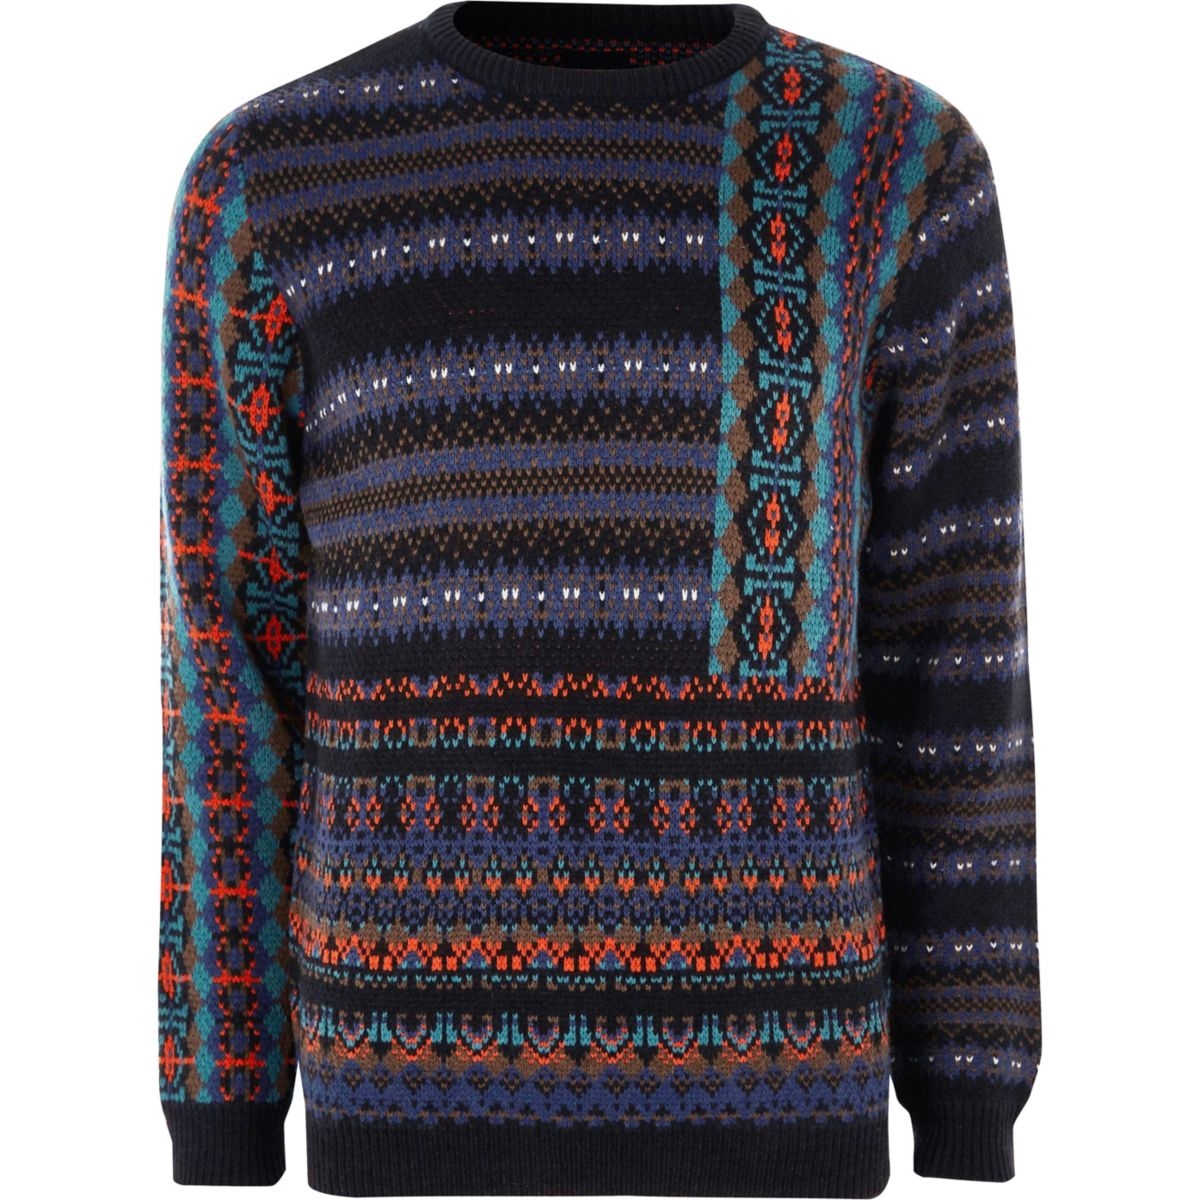 Navy mixed Fairisle knit Christmas sweater